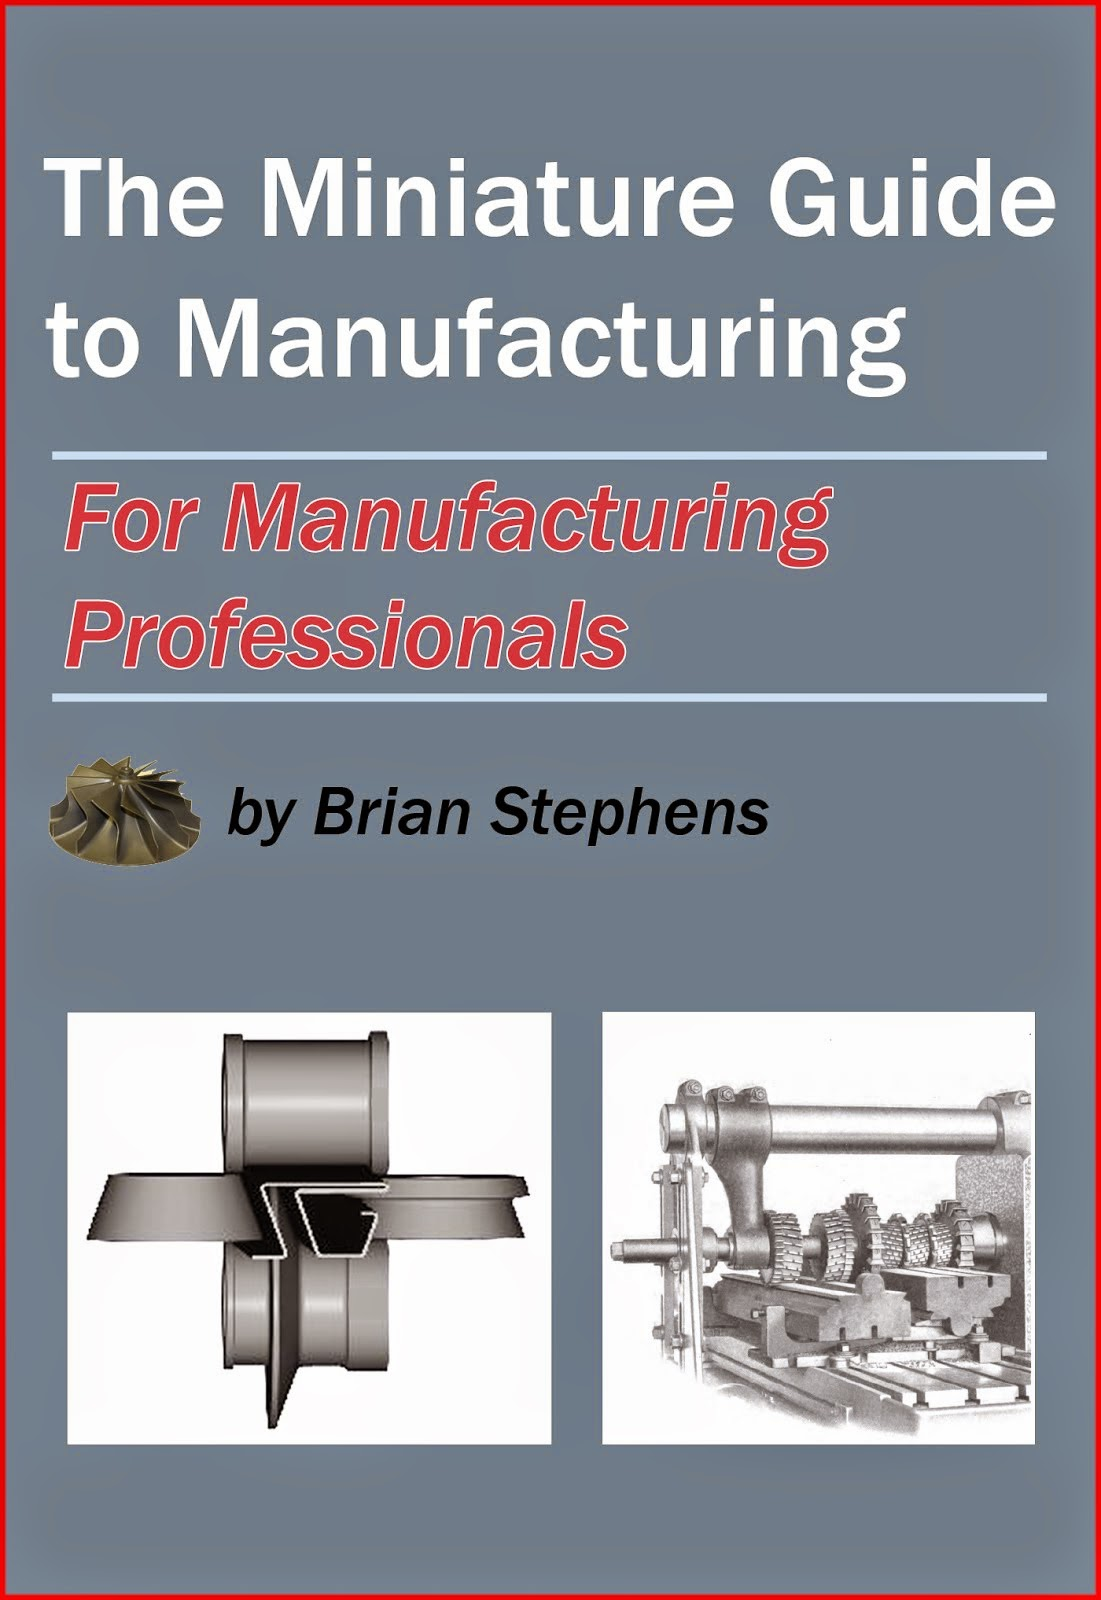 A Miniature Guide to Manufacturing